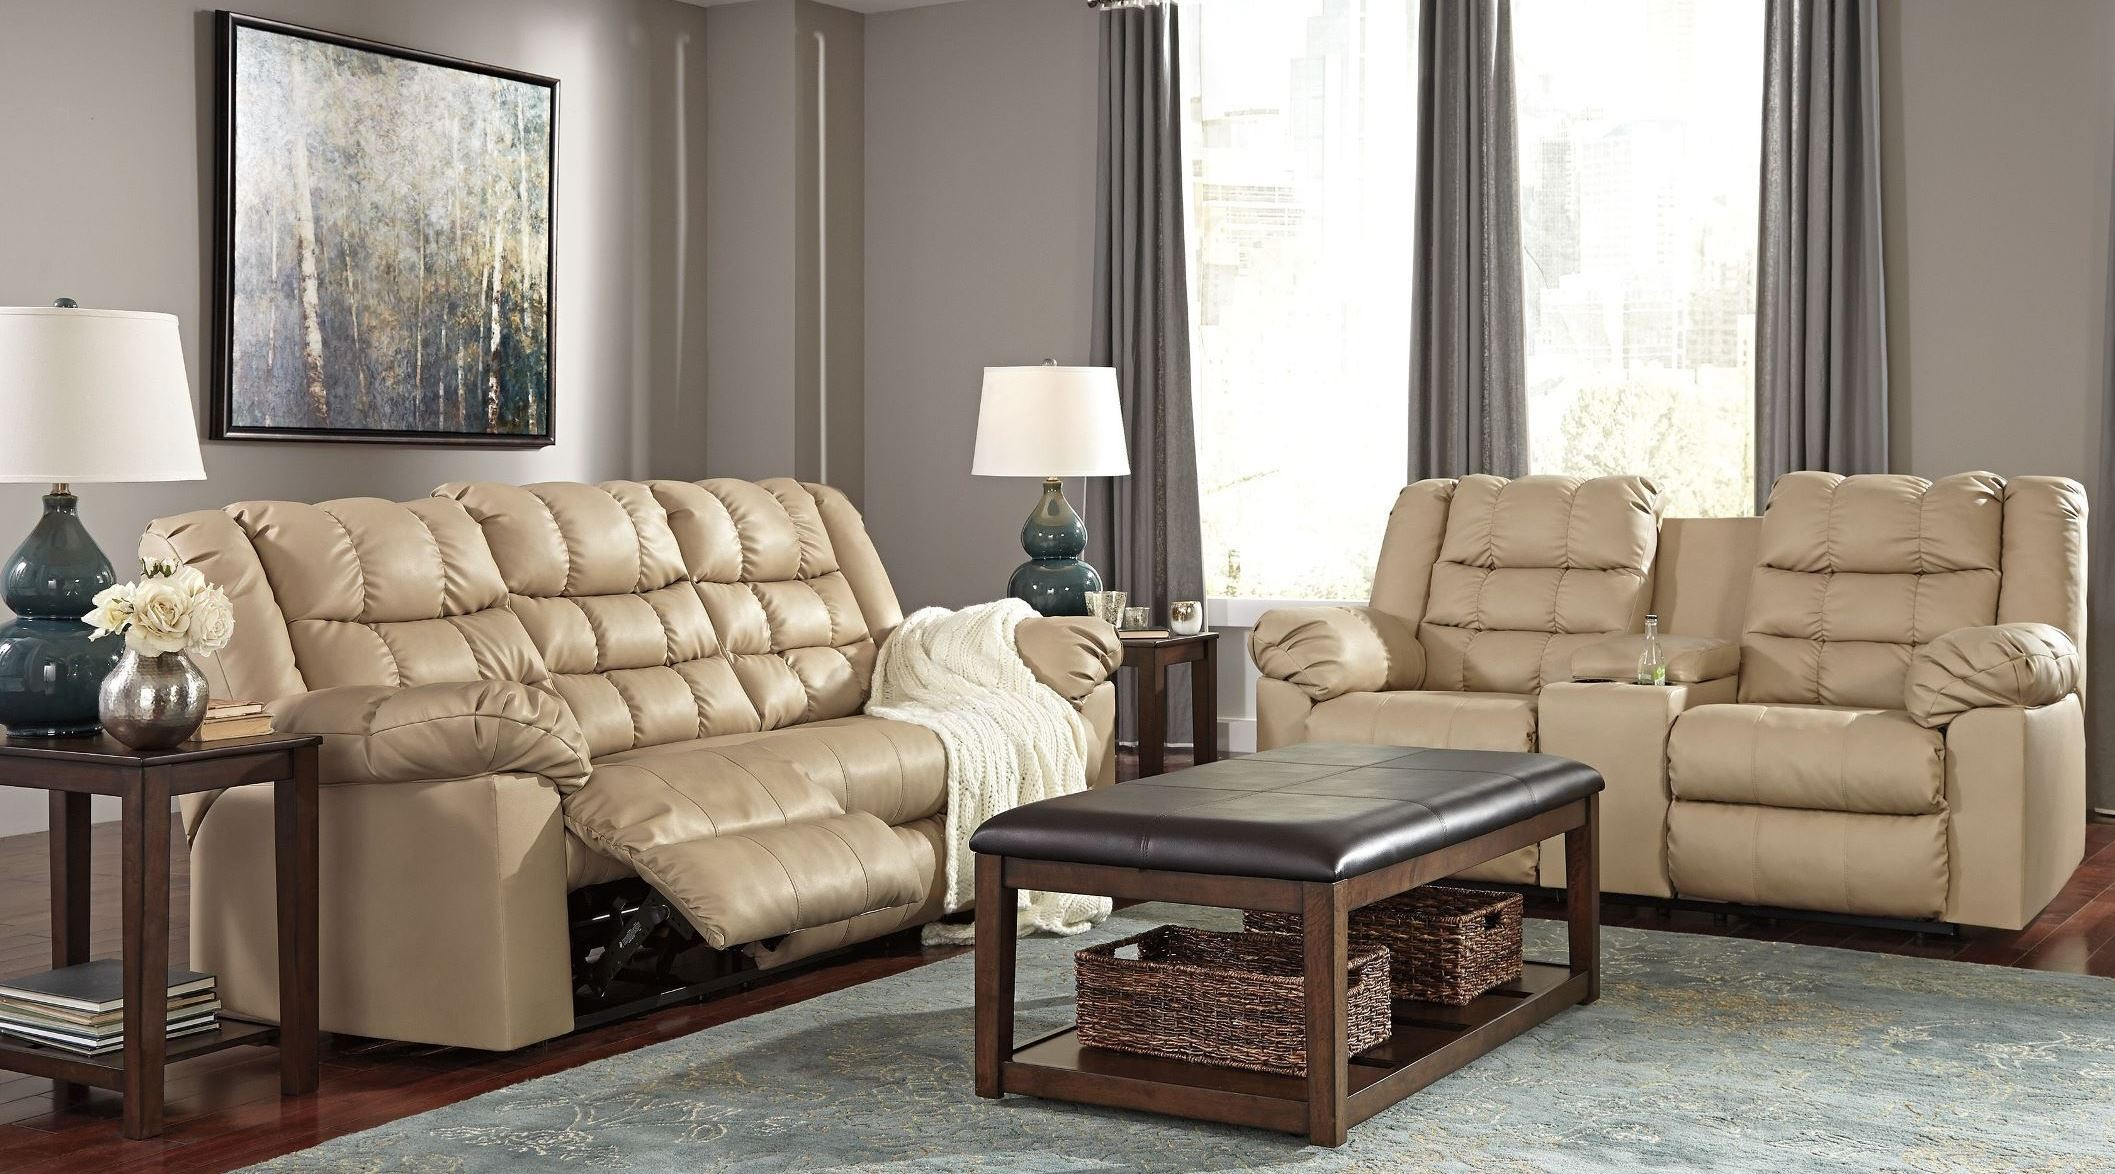 Brolayne durablend beige reclining living room set from for Living room 94 answers